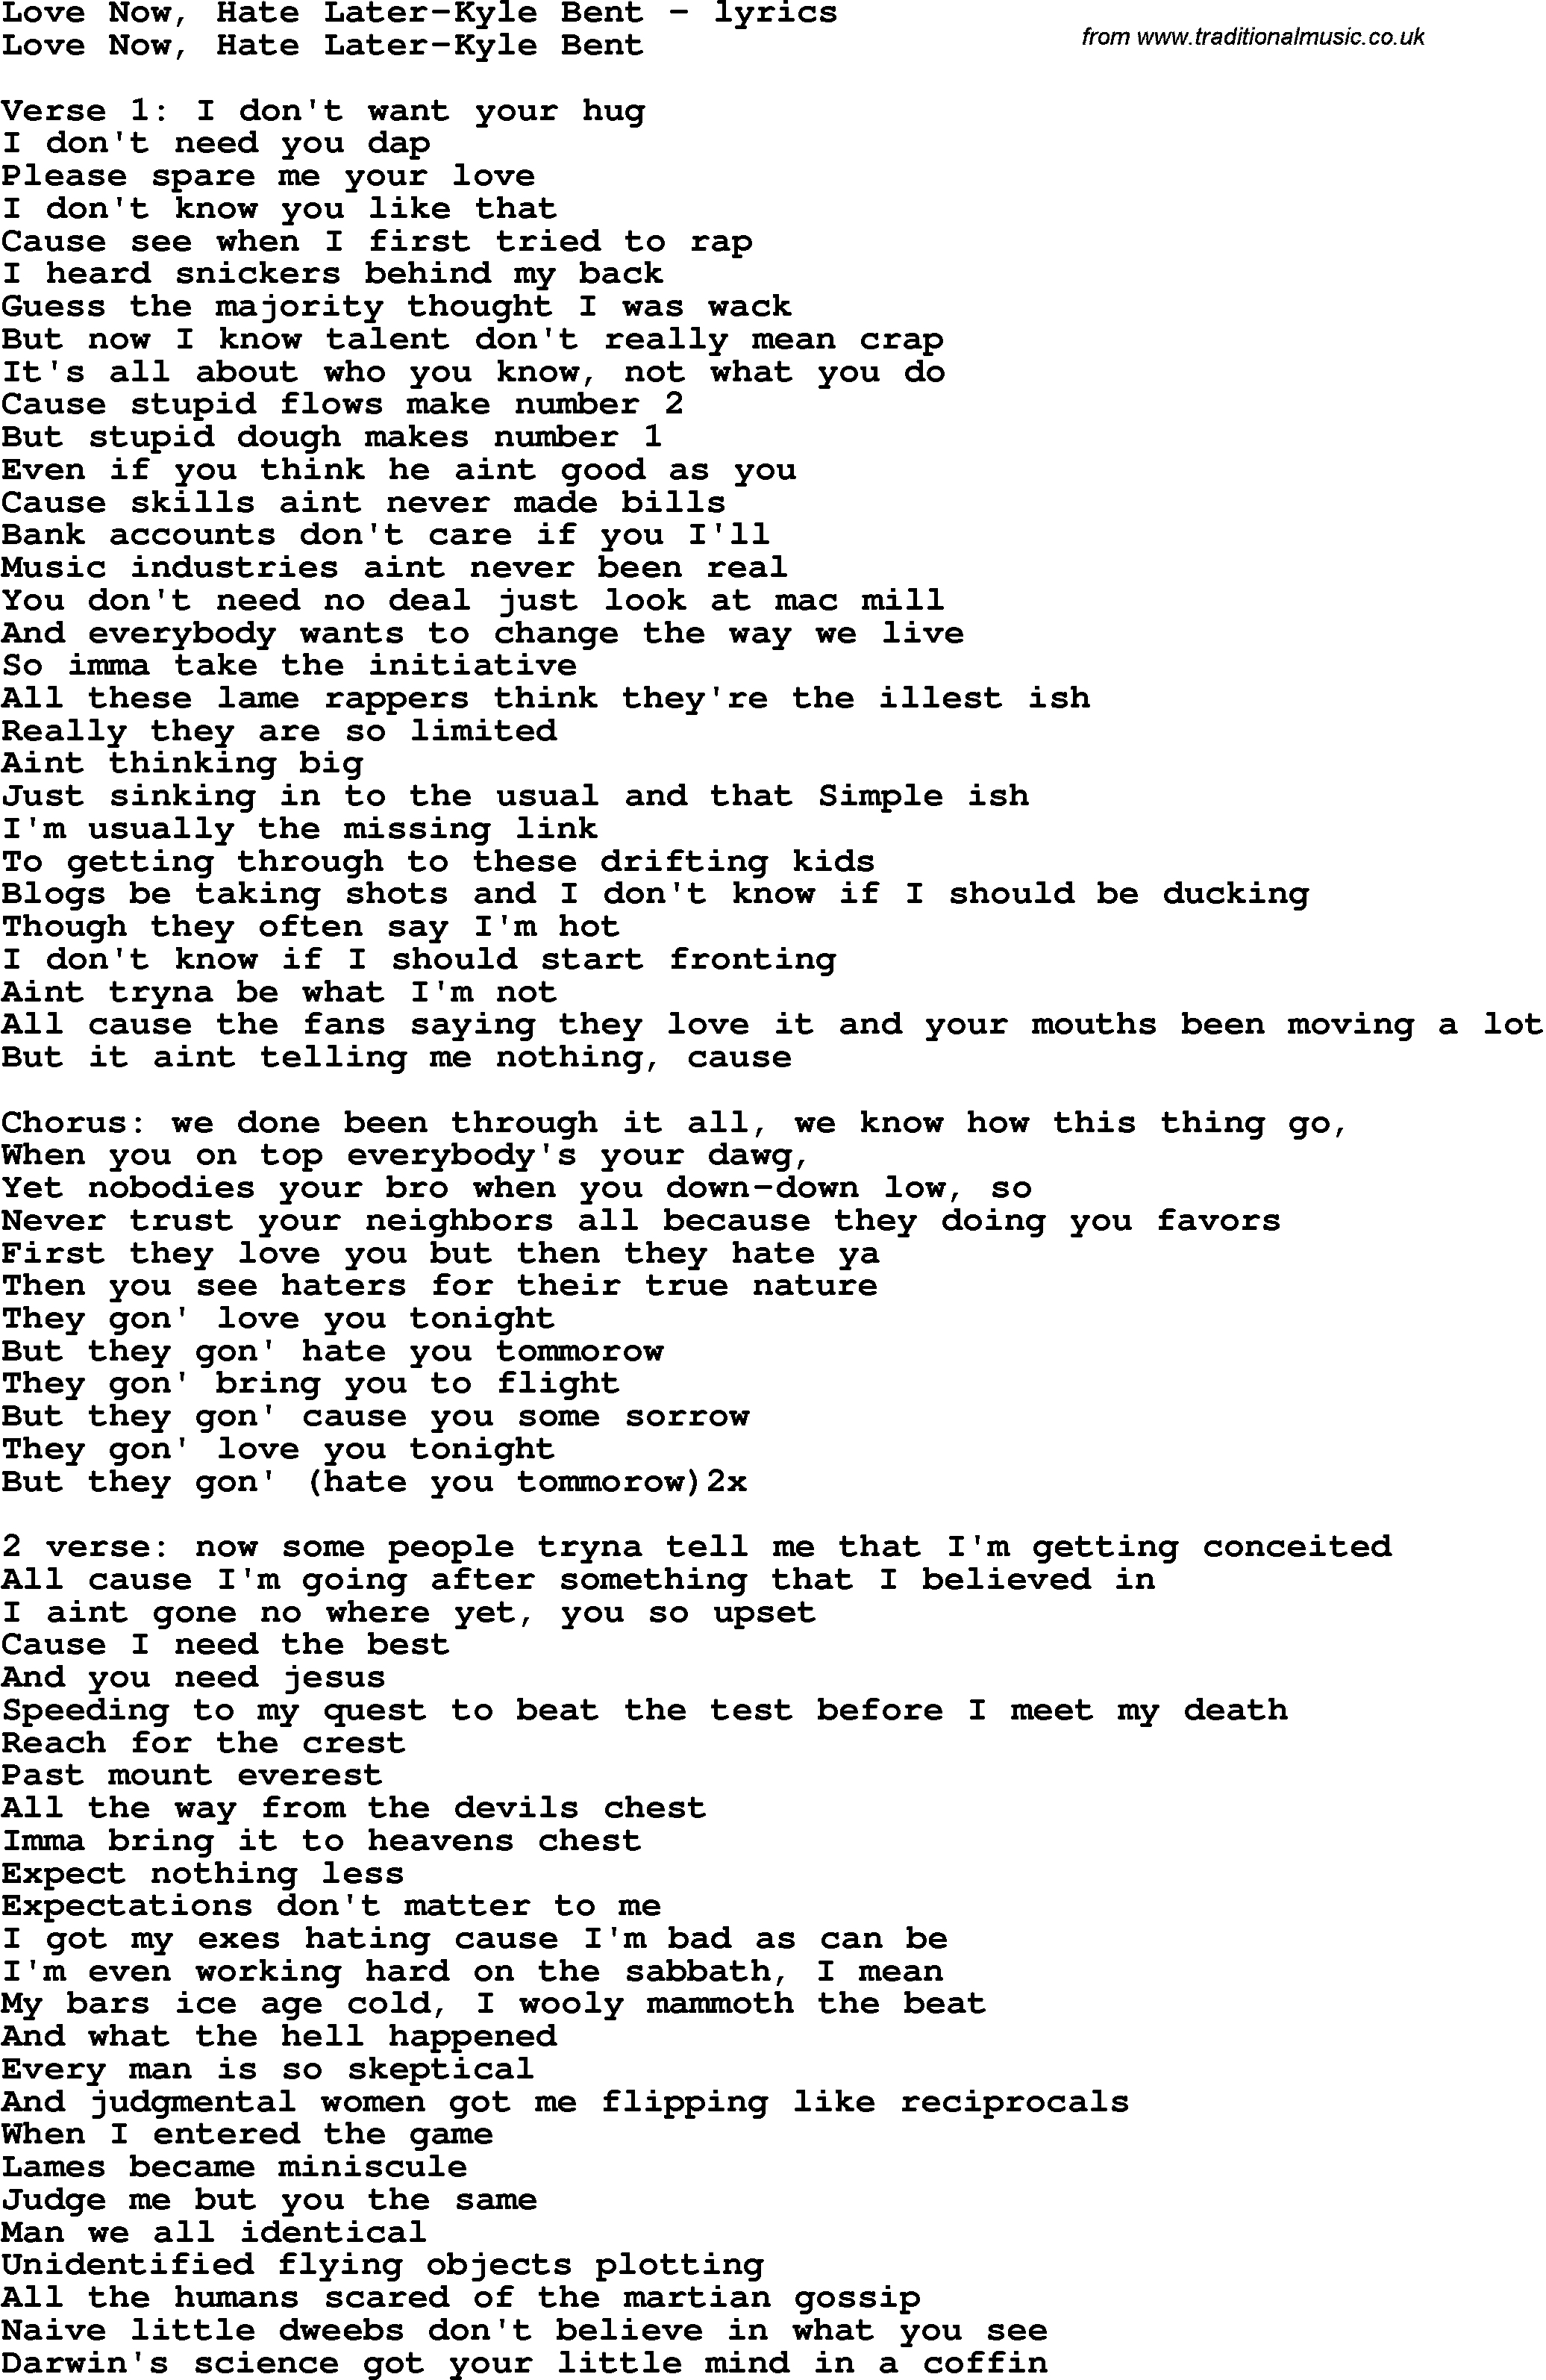 Love thing lyrics